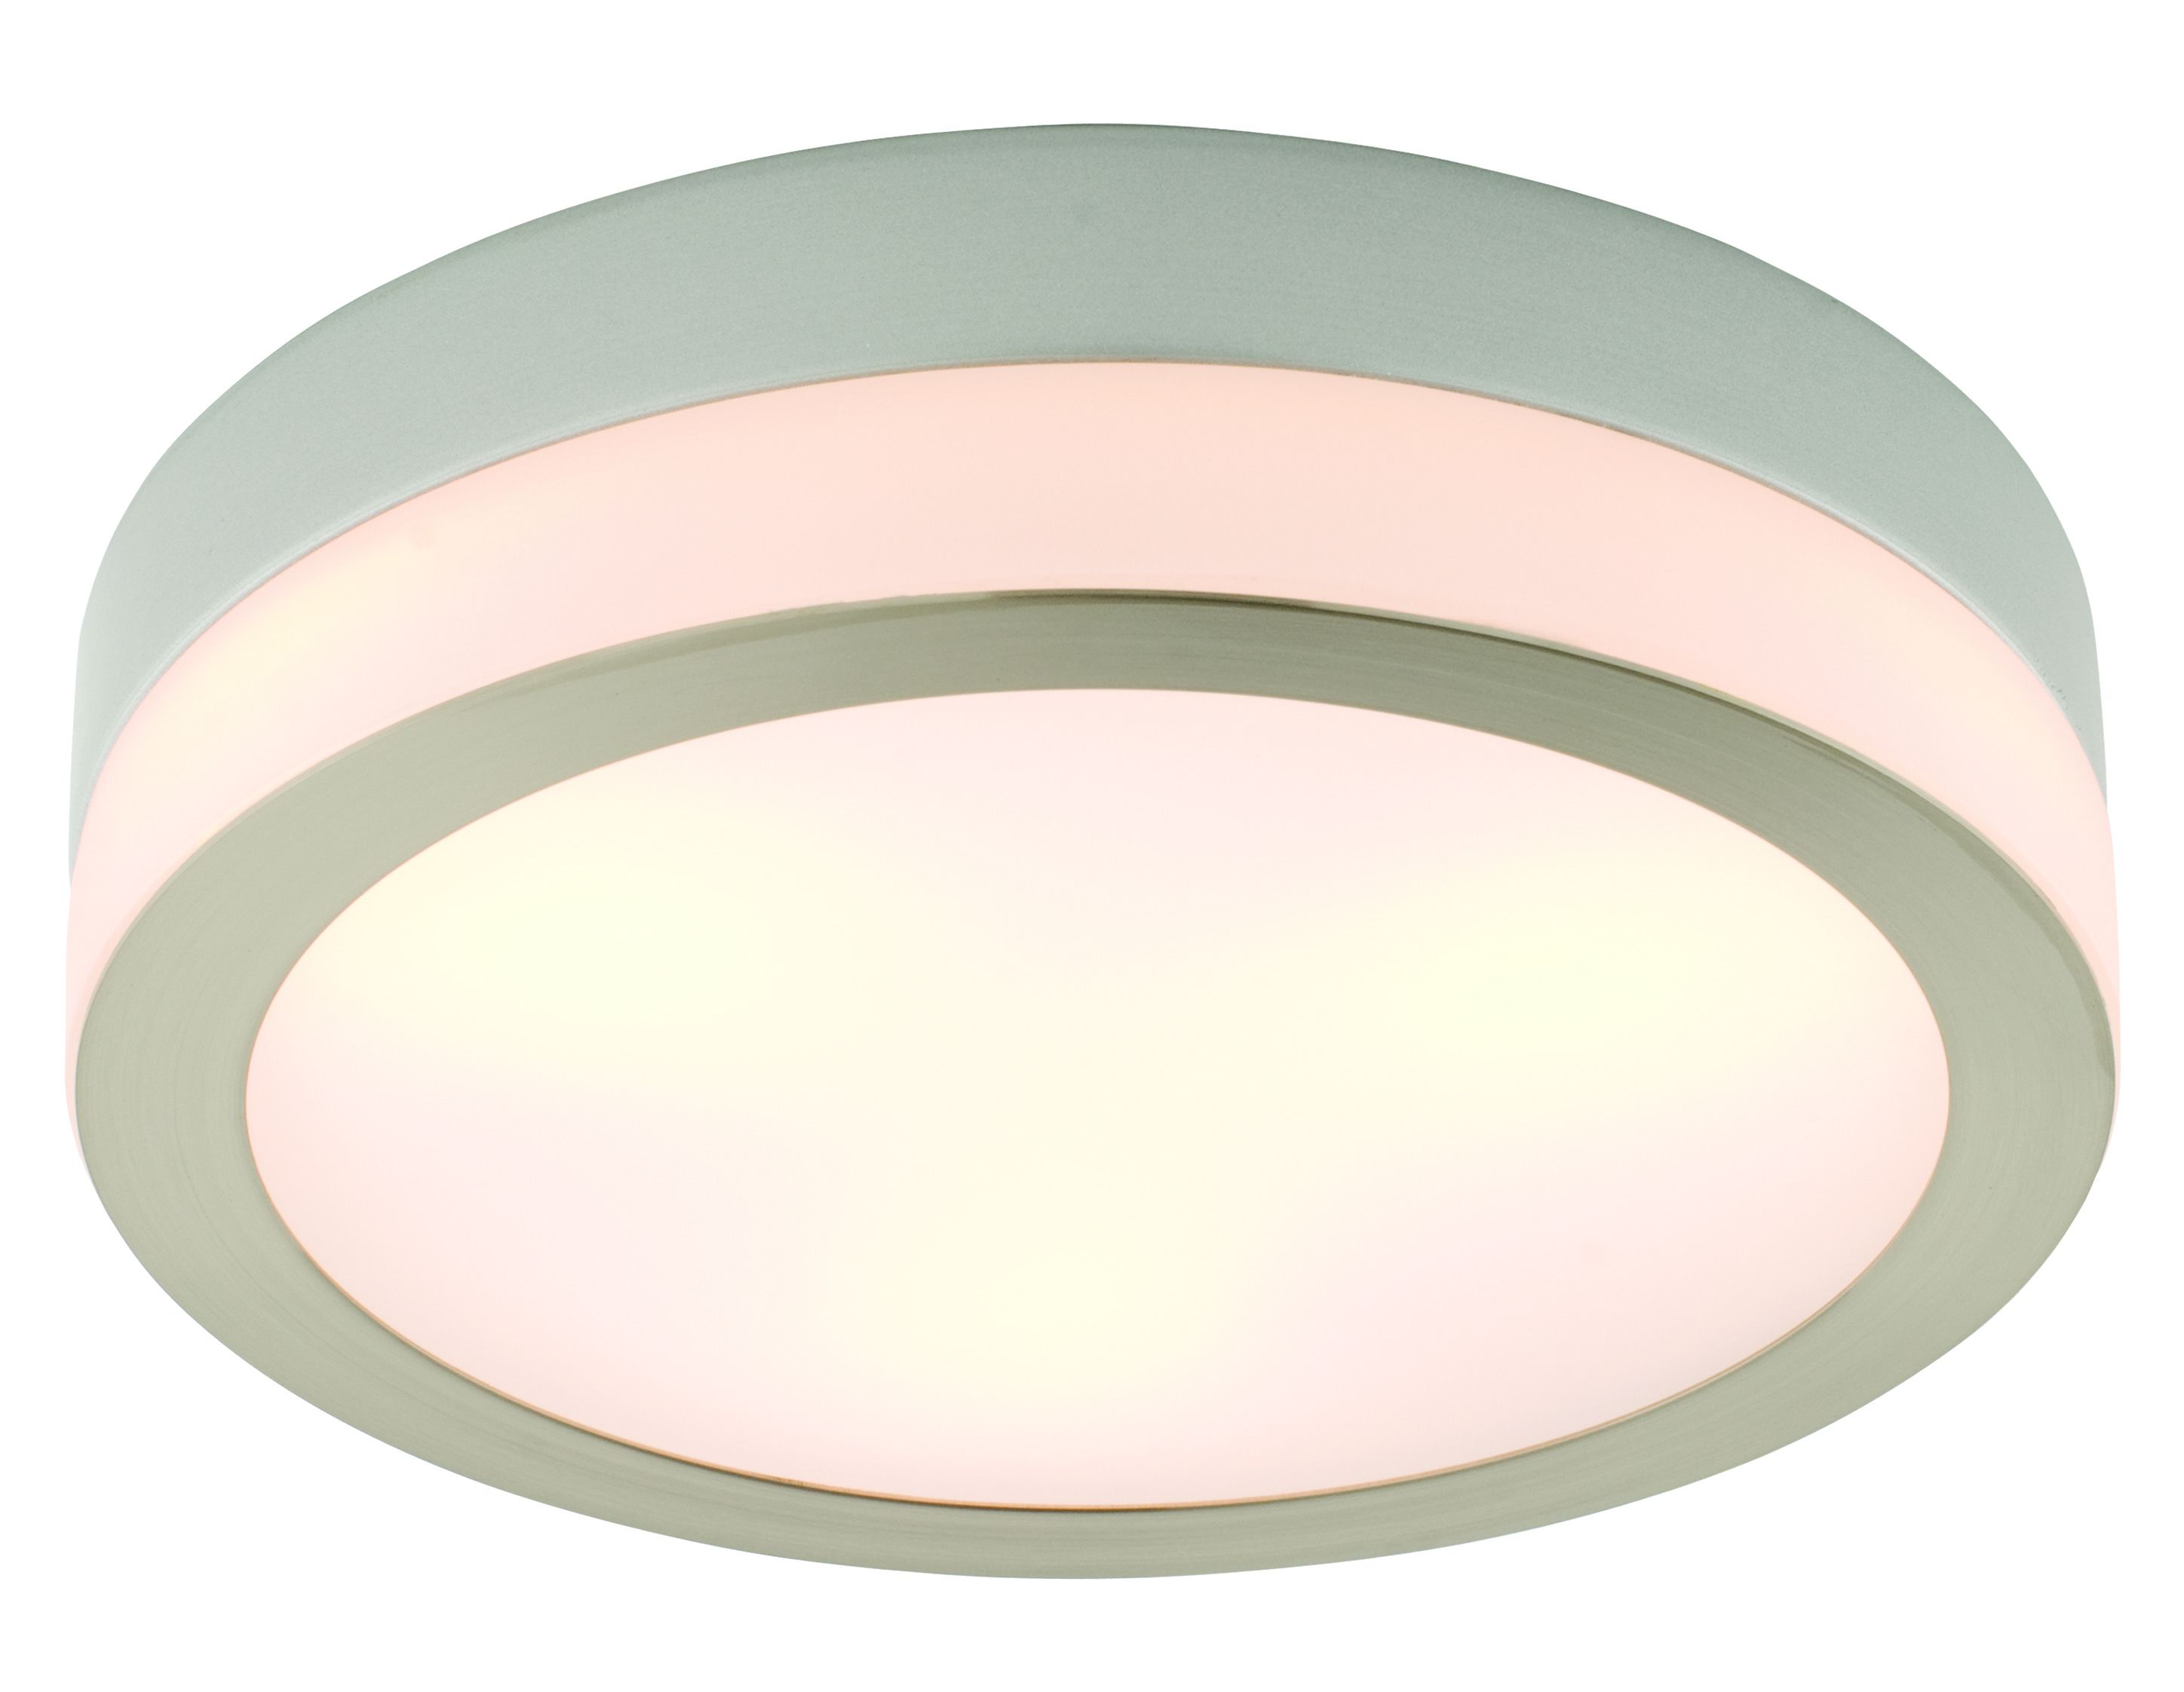 drum lighting fixtures ceiling light low bathroom styles profile bright lights large round chrome fittings